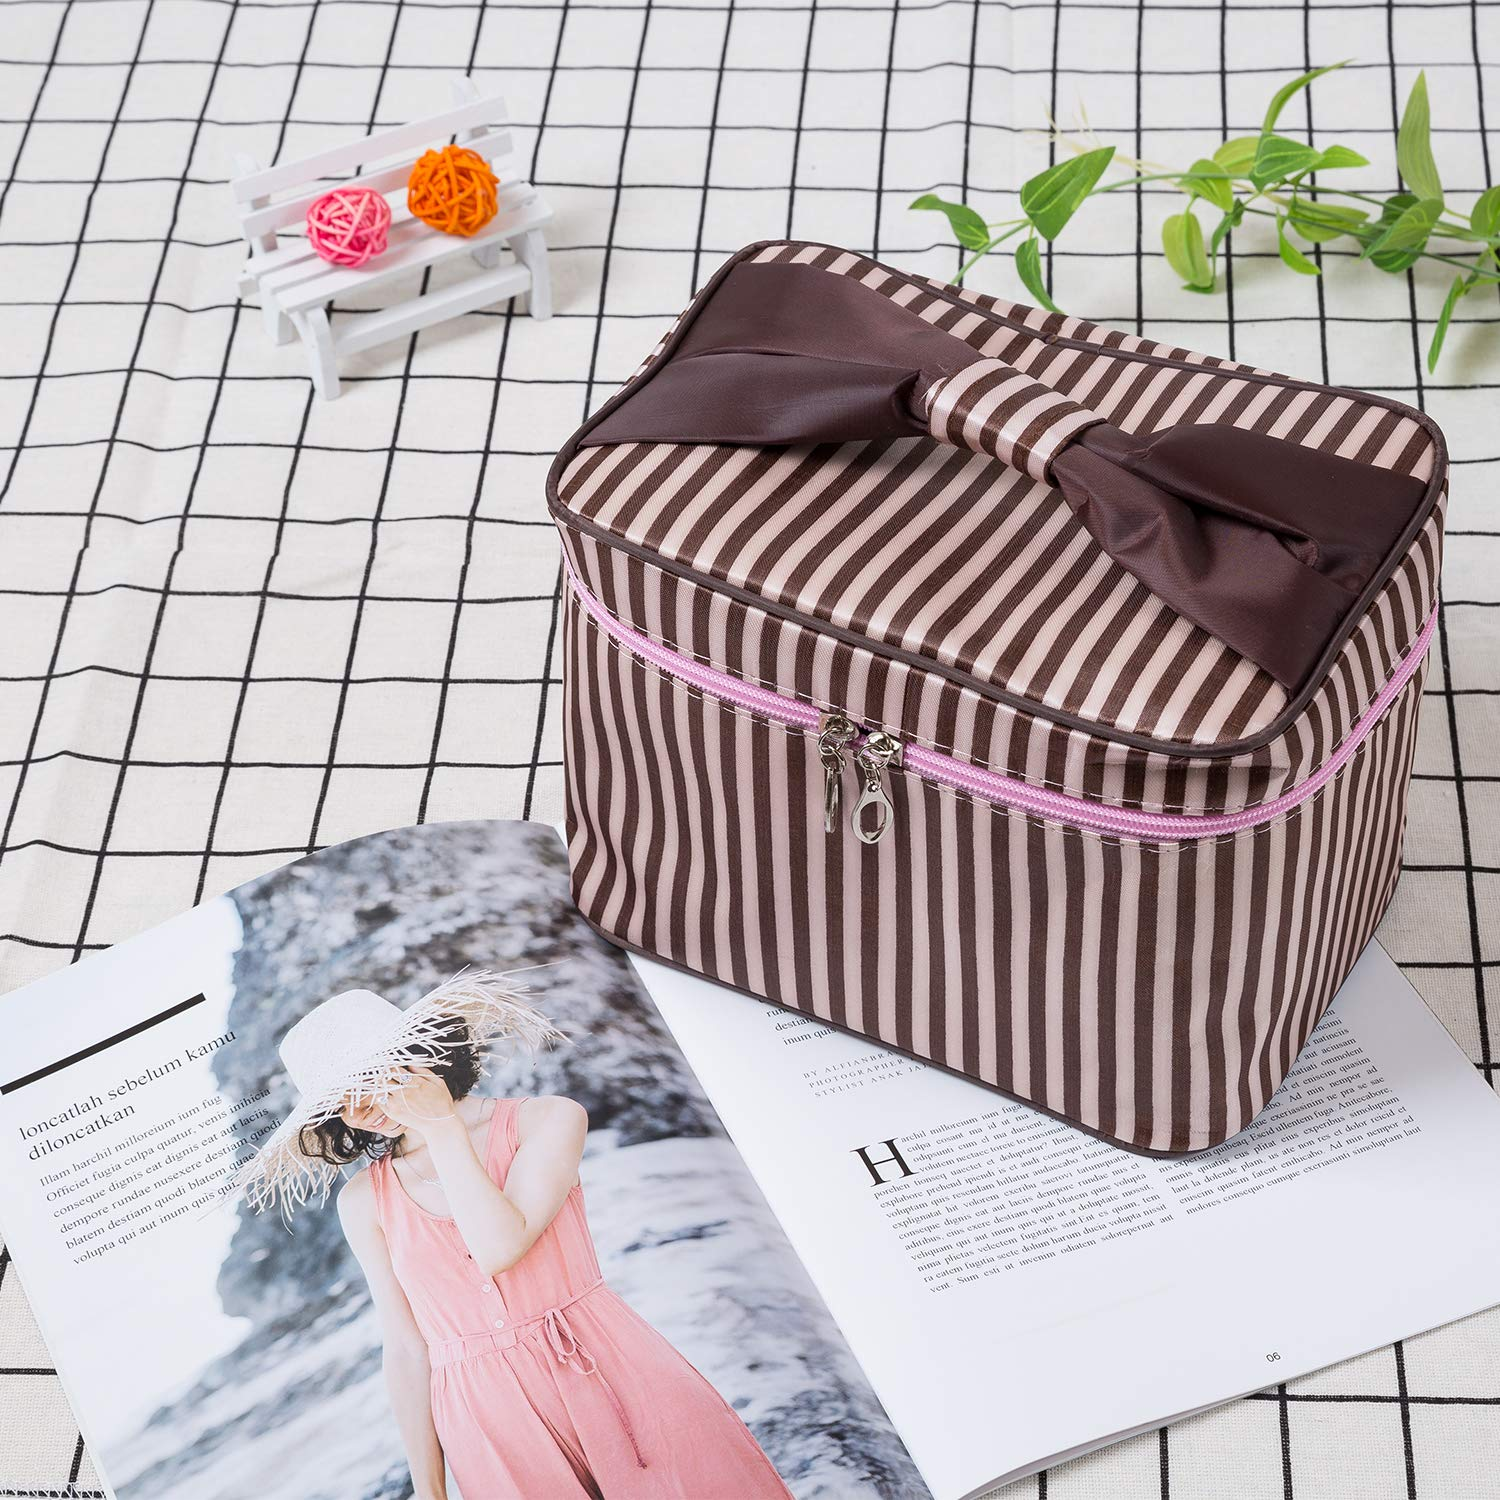 Women Portable Travel Cosmetic Bags with Brush Holder Make Up Bags (Coffee Stripe)